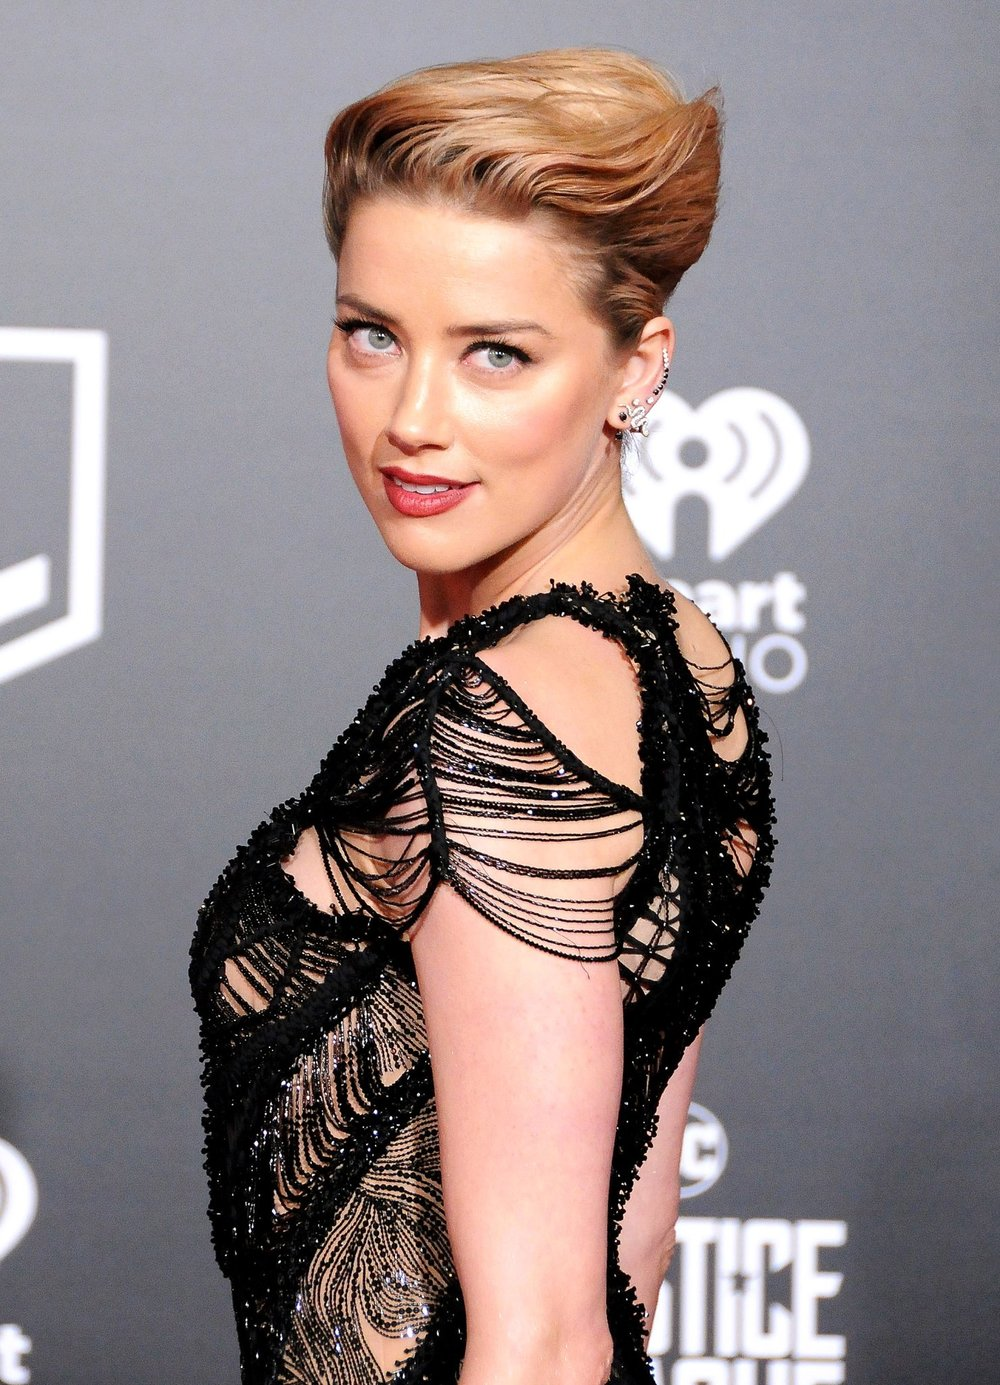 @hairbyadir used Kusco-Murphy's Setting Lotion for this red carpet look.